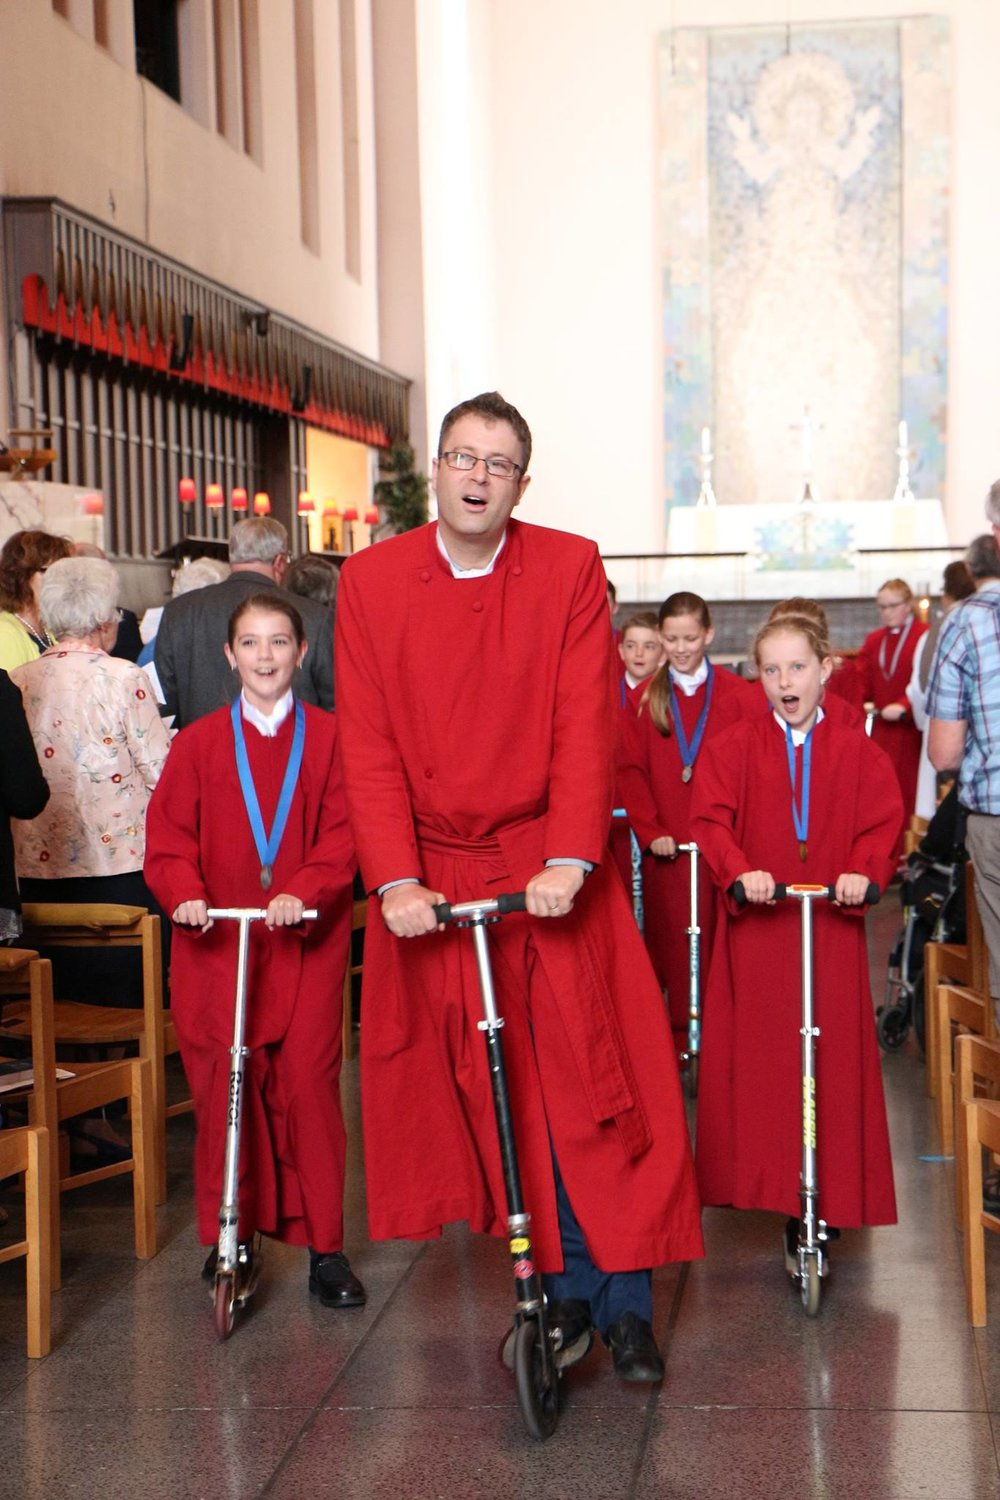 chorister-scooters.jpg